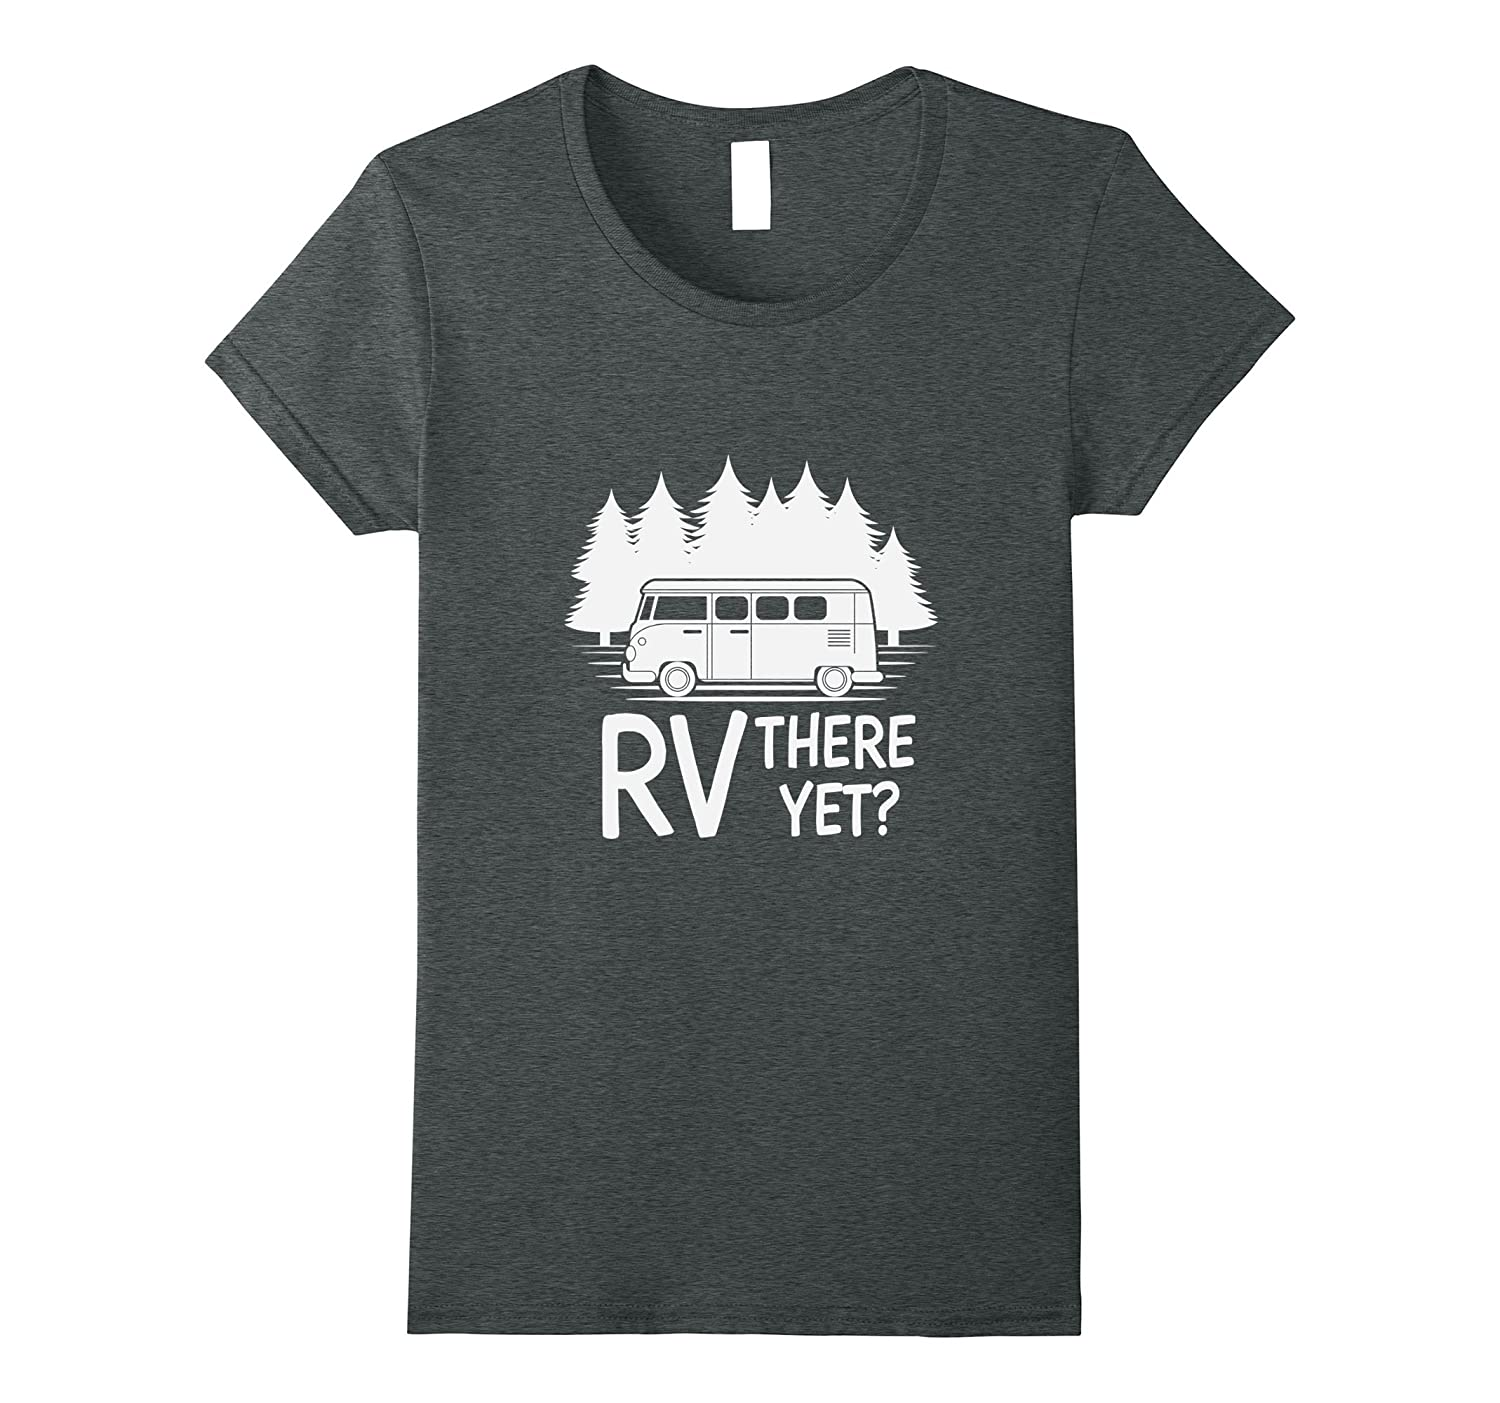 Funny RV There Yet Camping T-Shirt Roadtrip Travel Tee